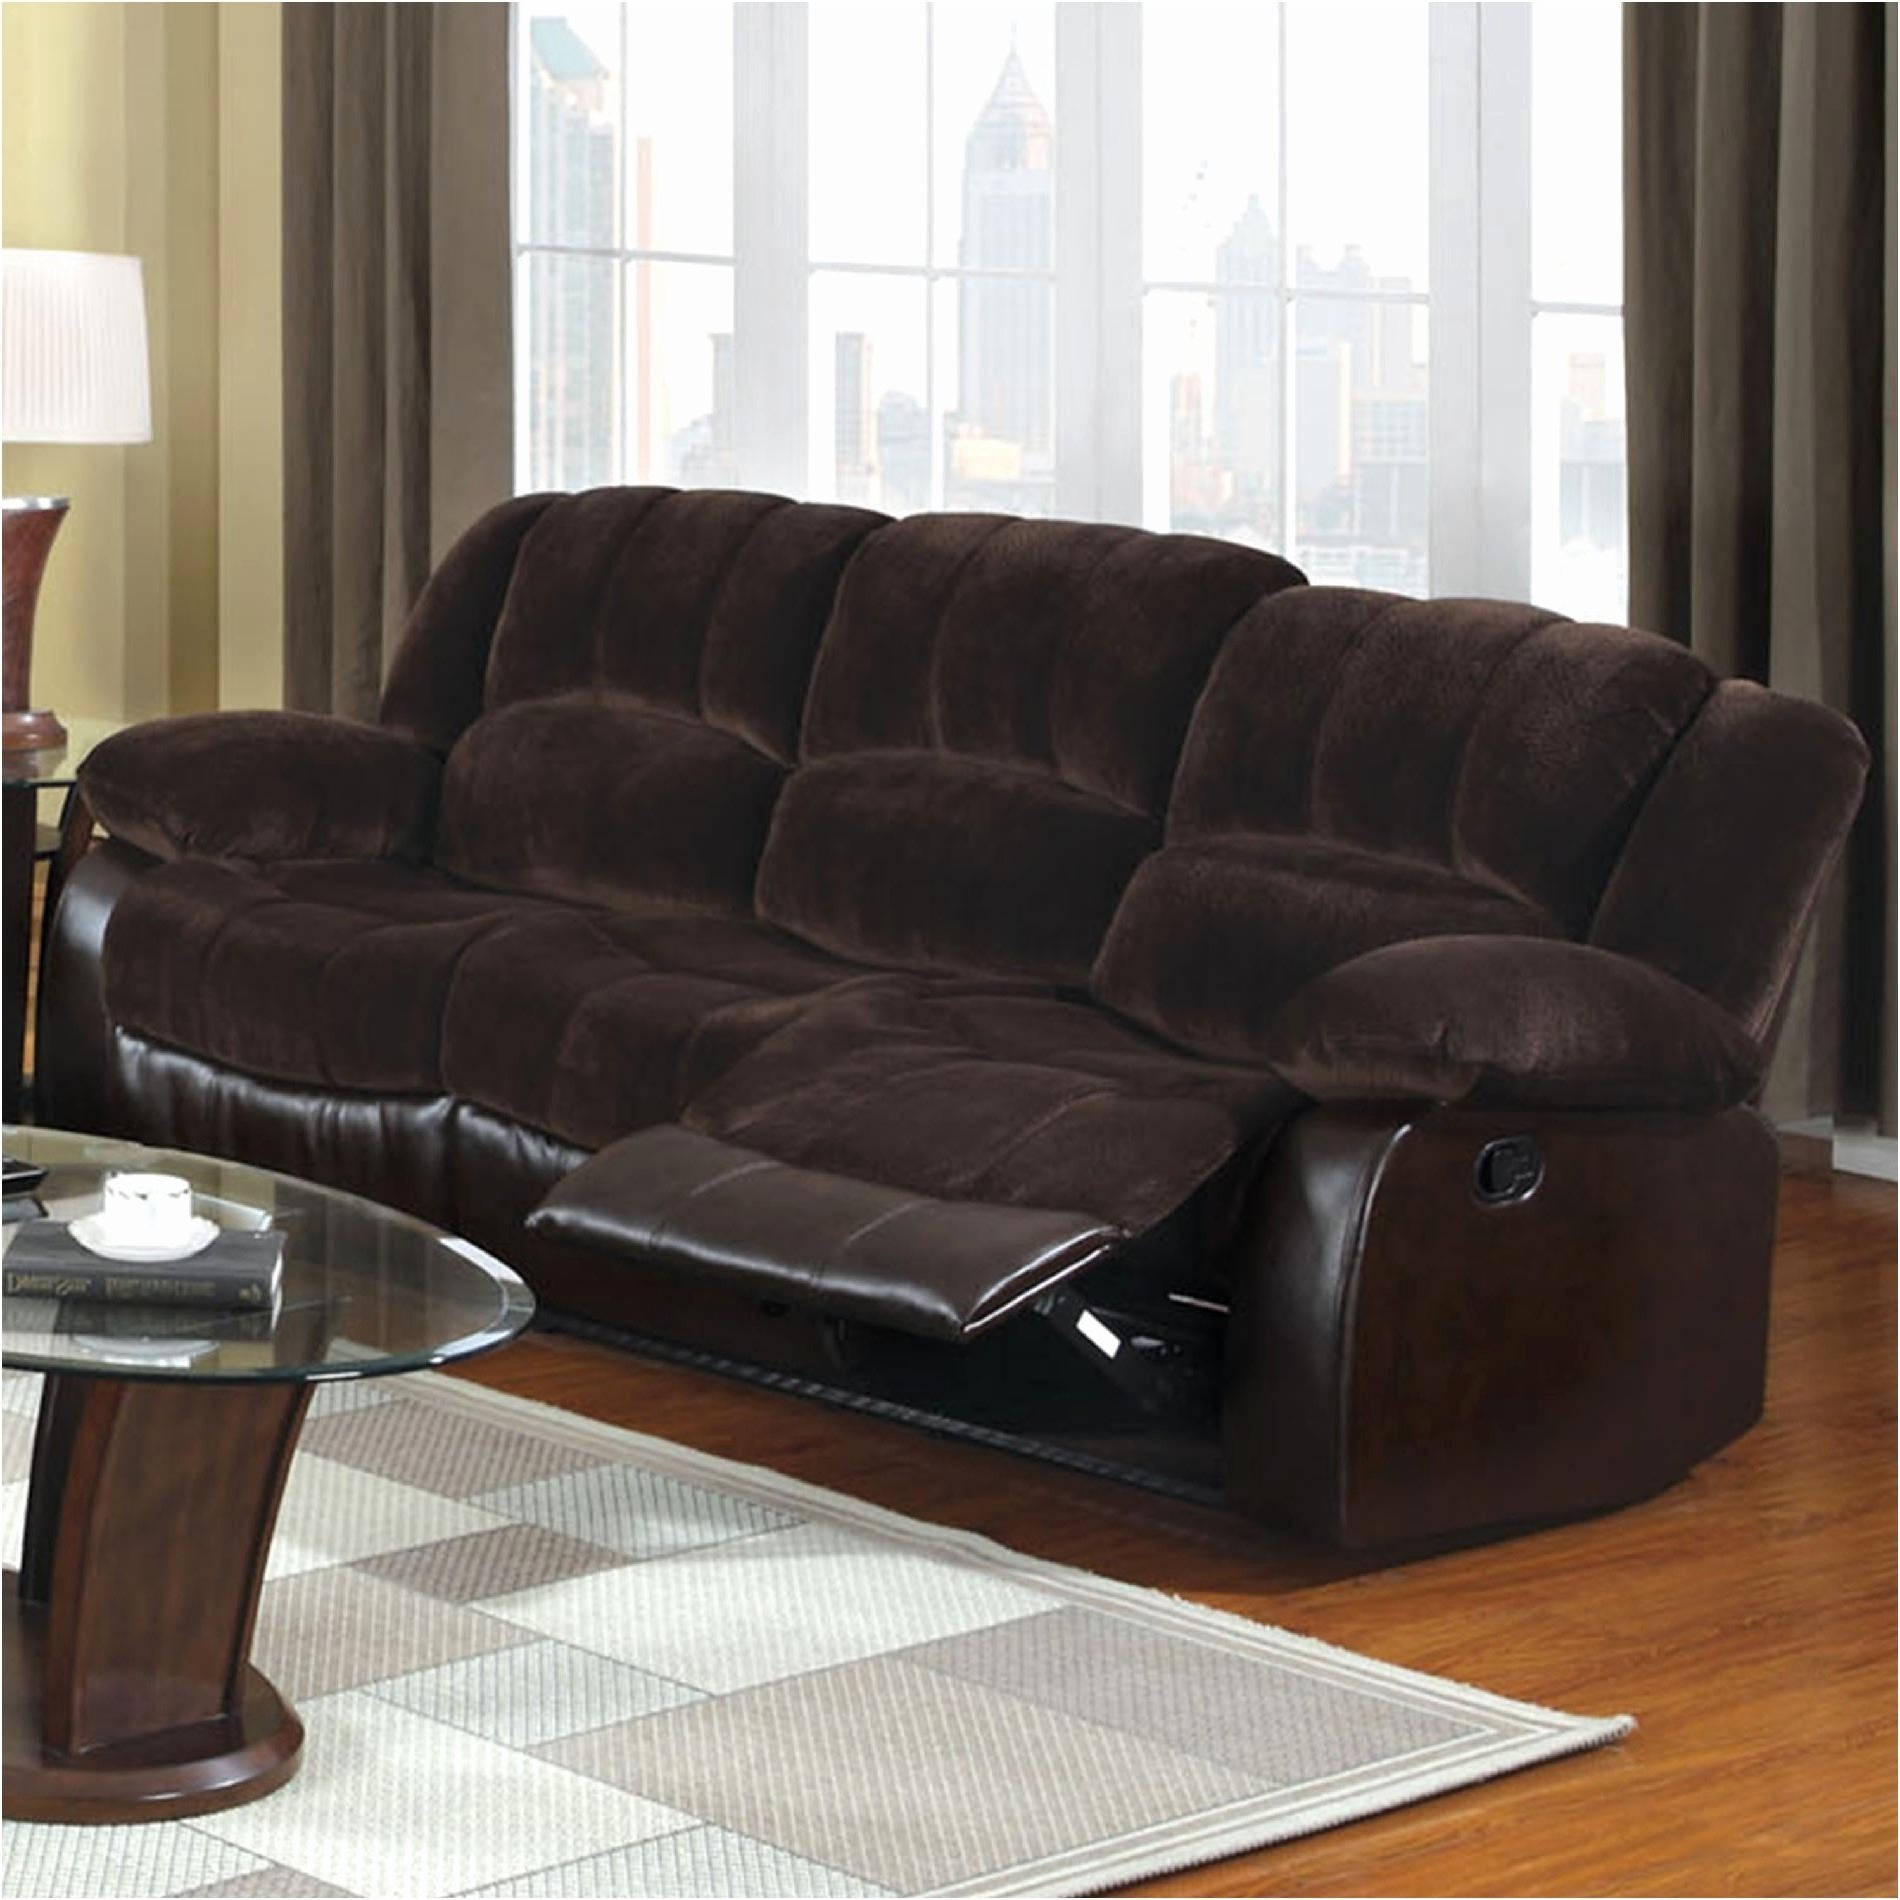 Fashionable Sears Sofas Inside Fresh Sears Leather Sofa New – Intuisiblog (View 2 of 20)